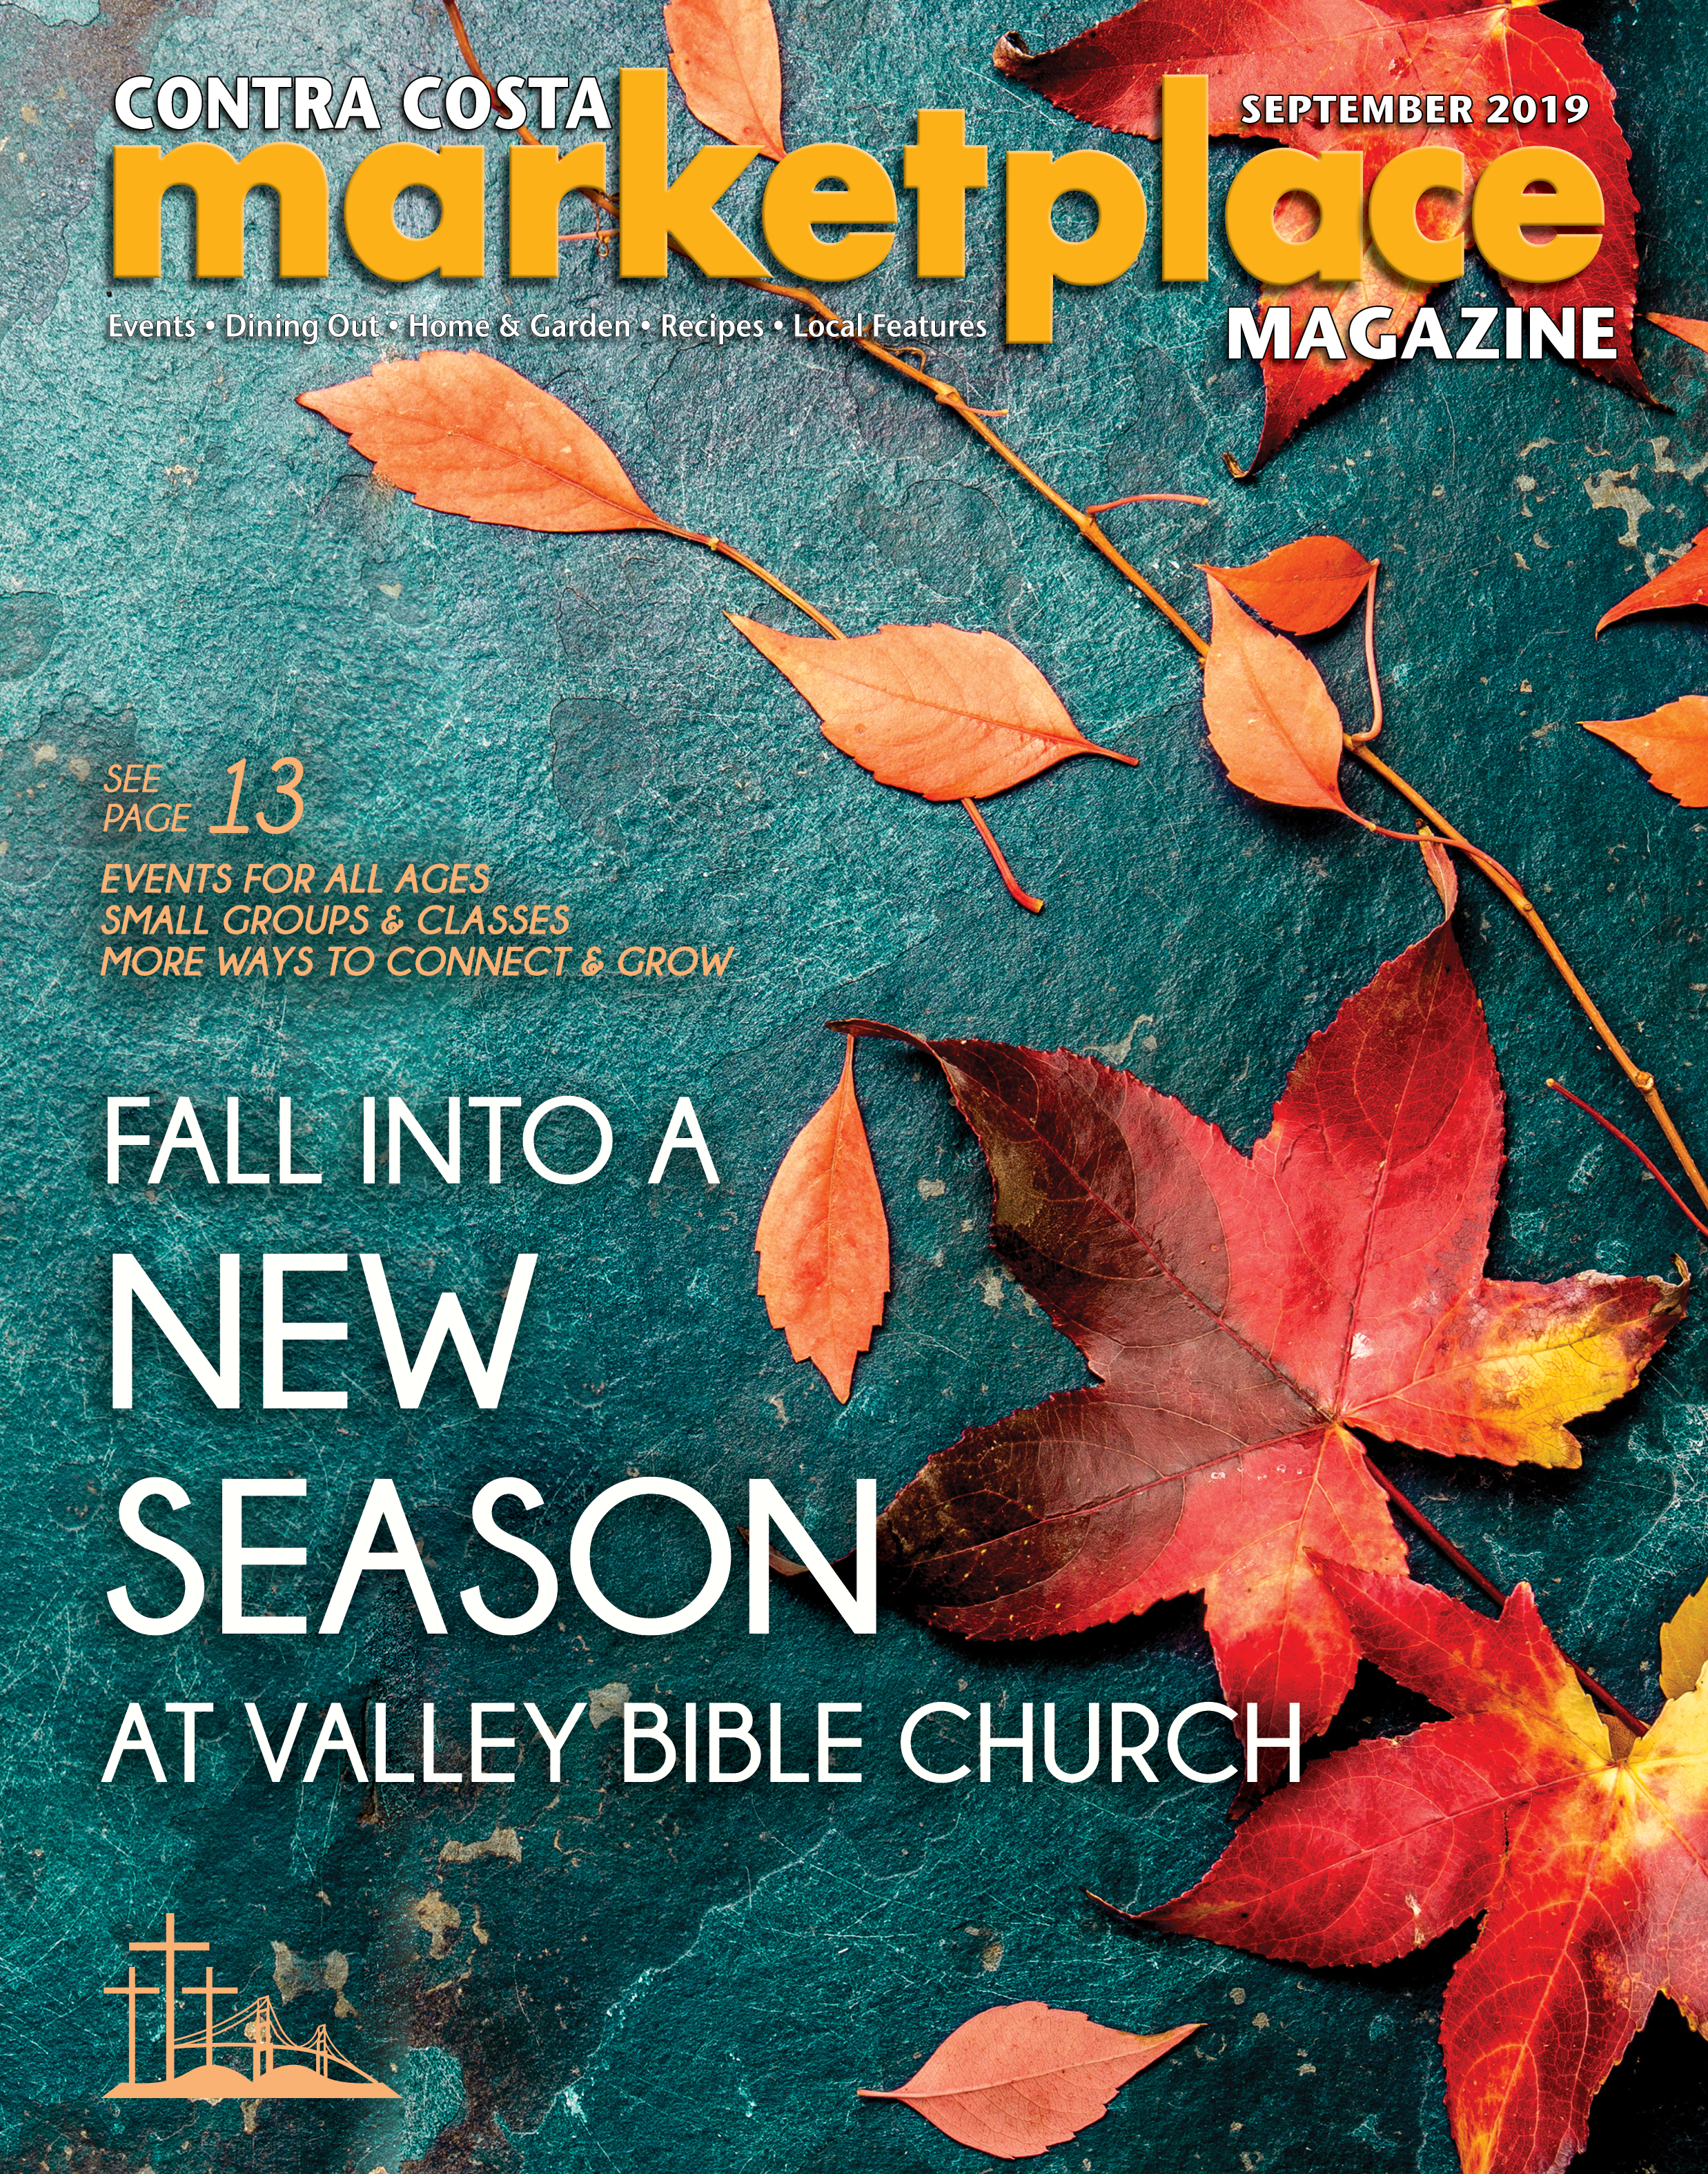 CC Valley Bible Church Cover 0919HR